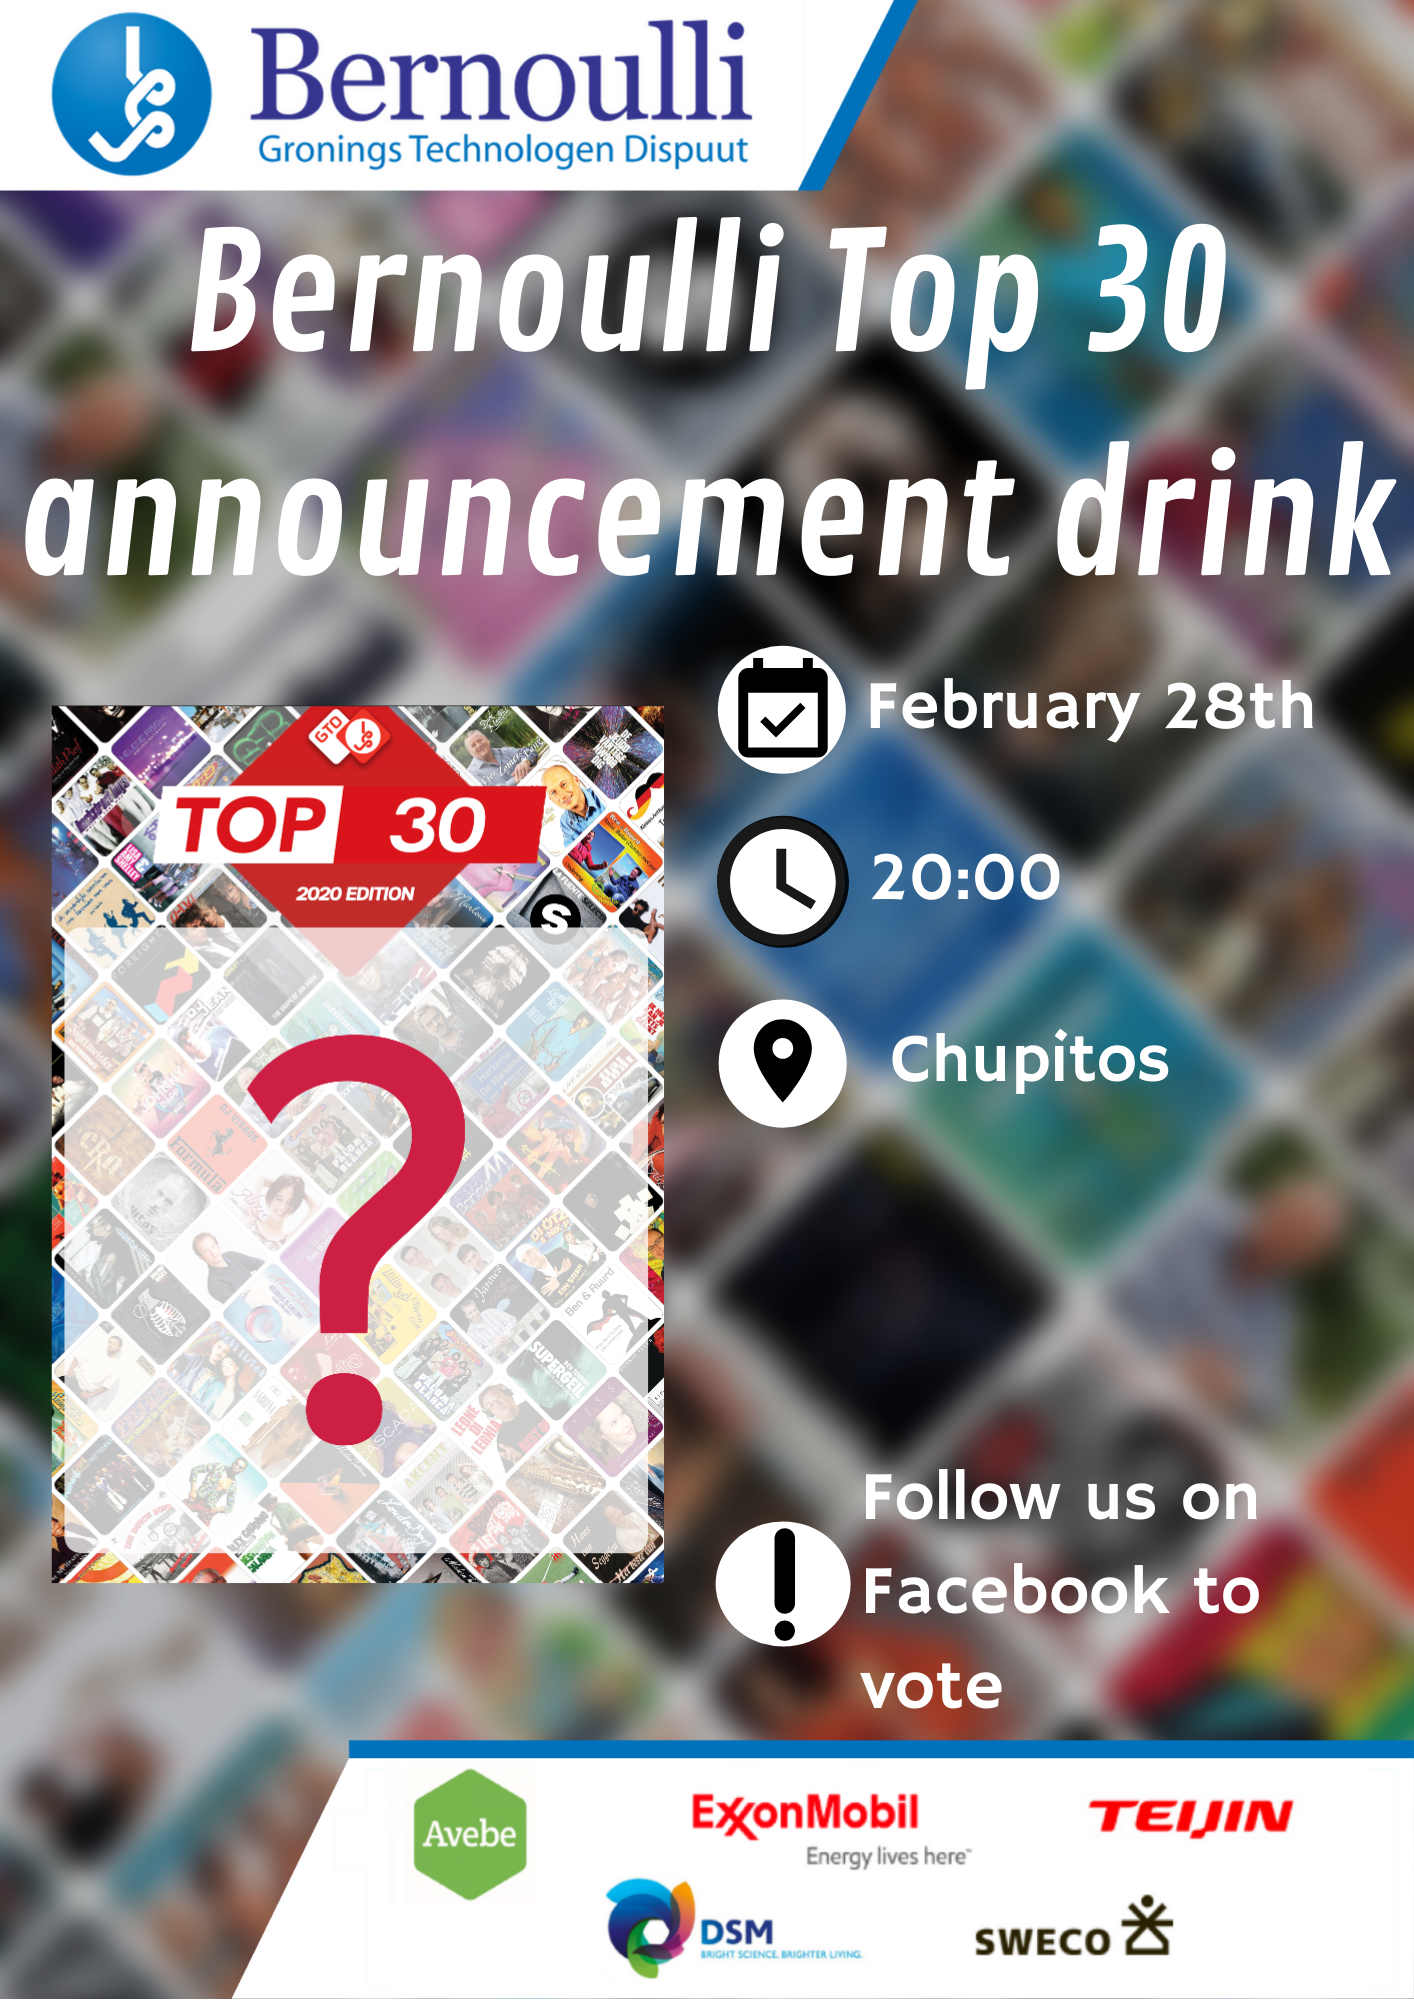 Top30 announcement drink